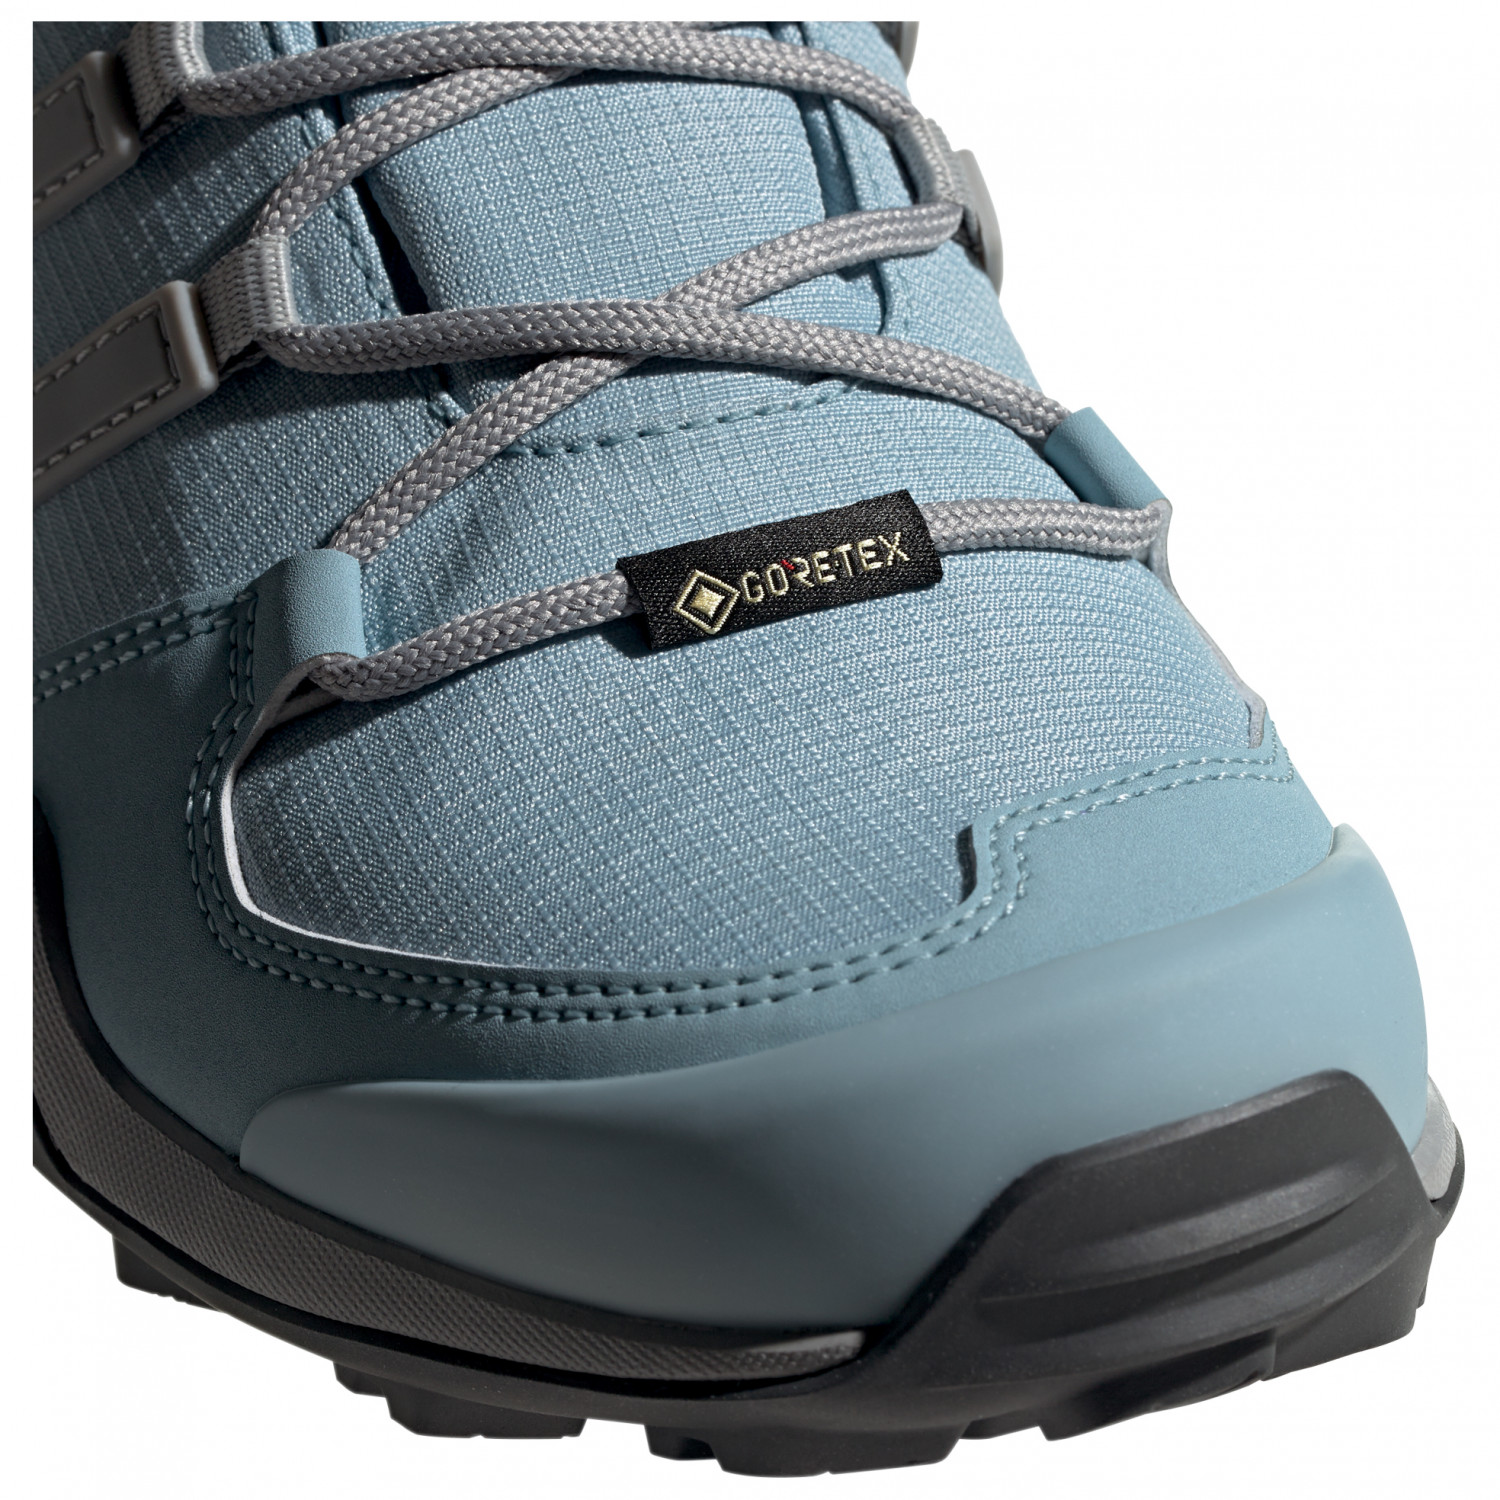 939c94dc002d6 ... adidas - Women s Terrex Swift R2 Mid GTX - Walking boots ...